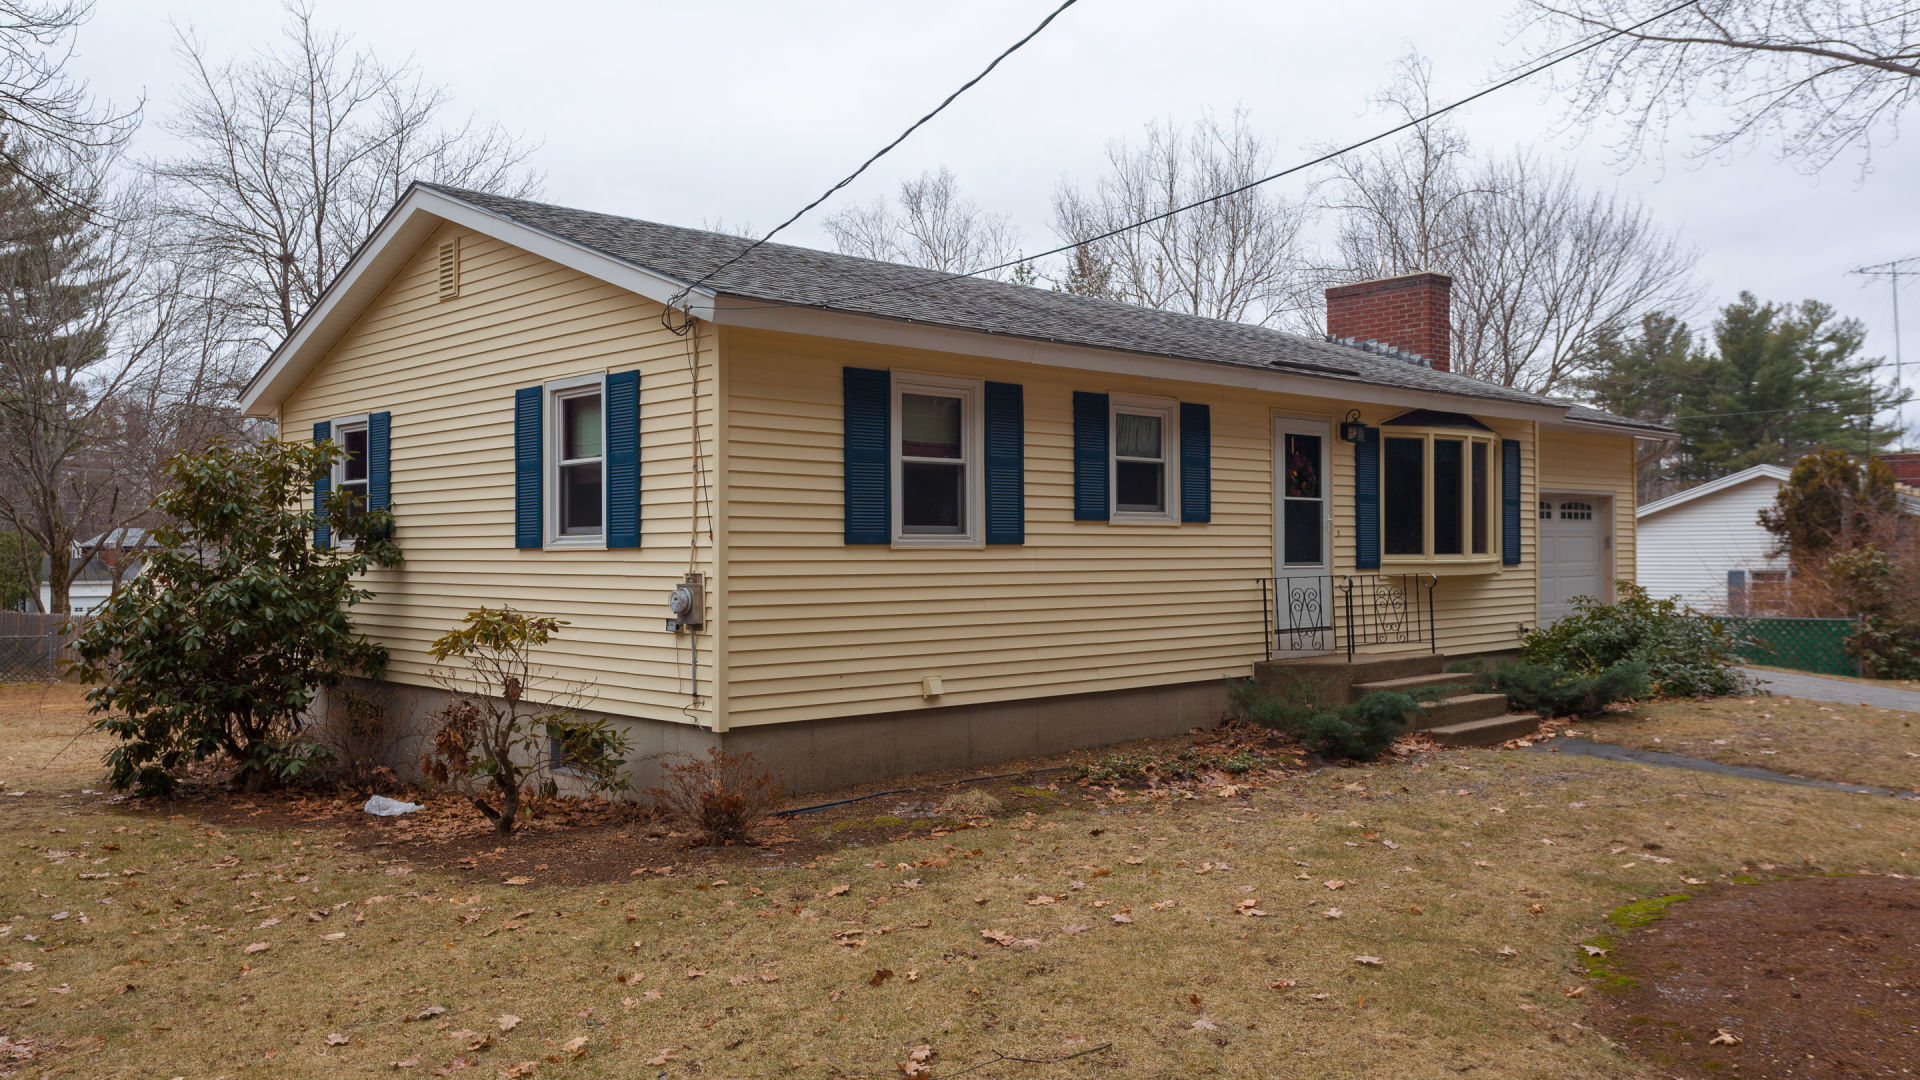 JUST LISTED! 13 Thompson Ave in Hooksett